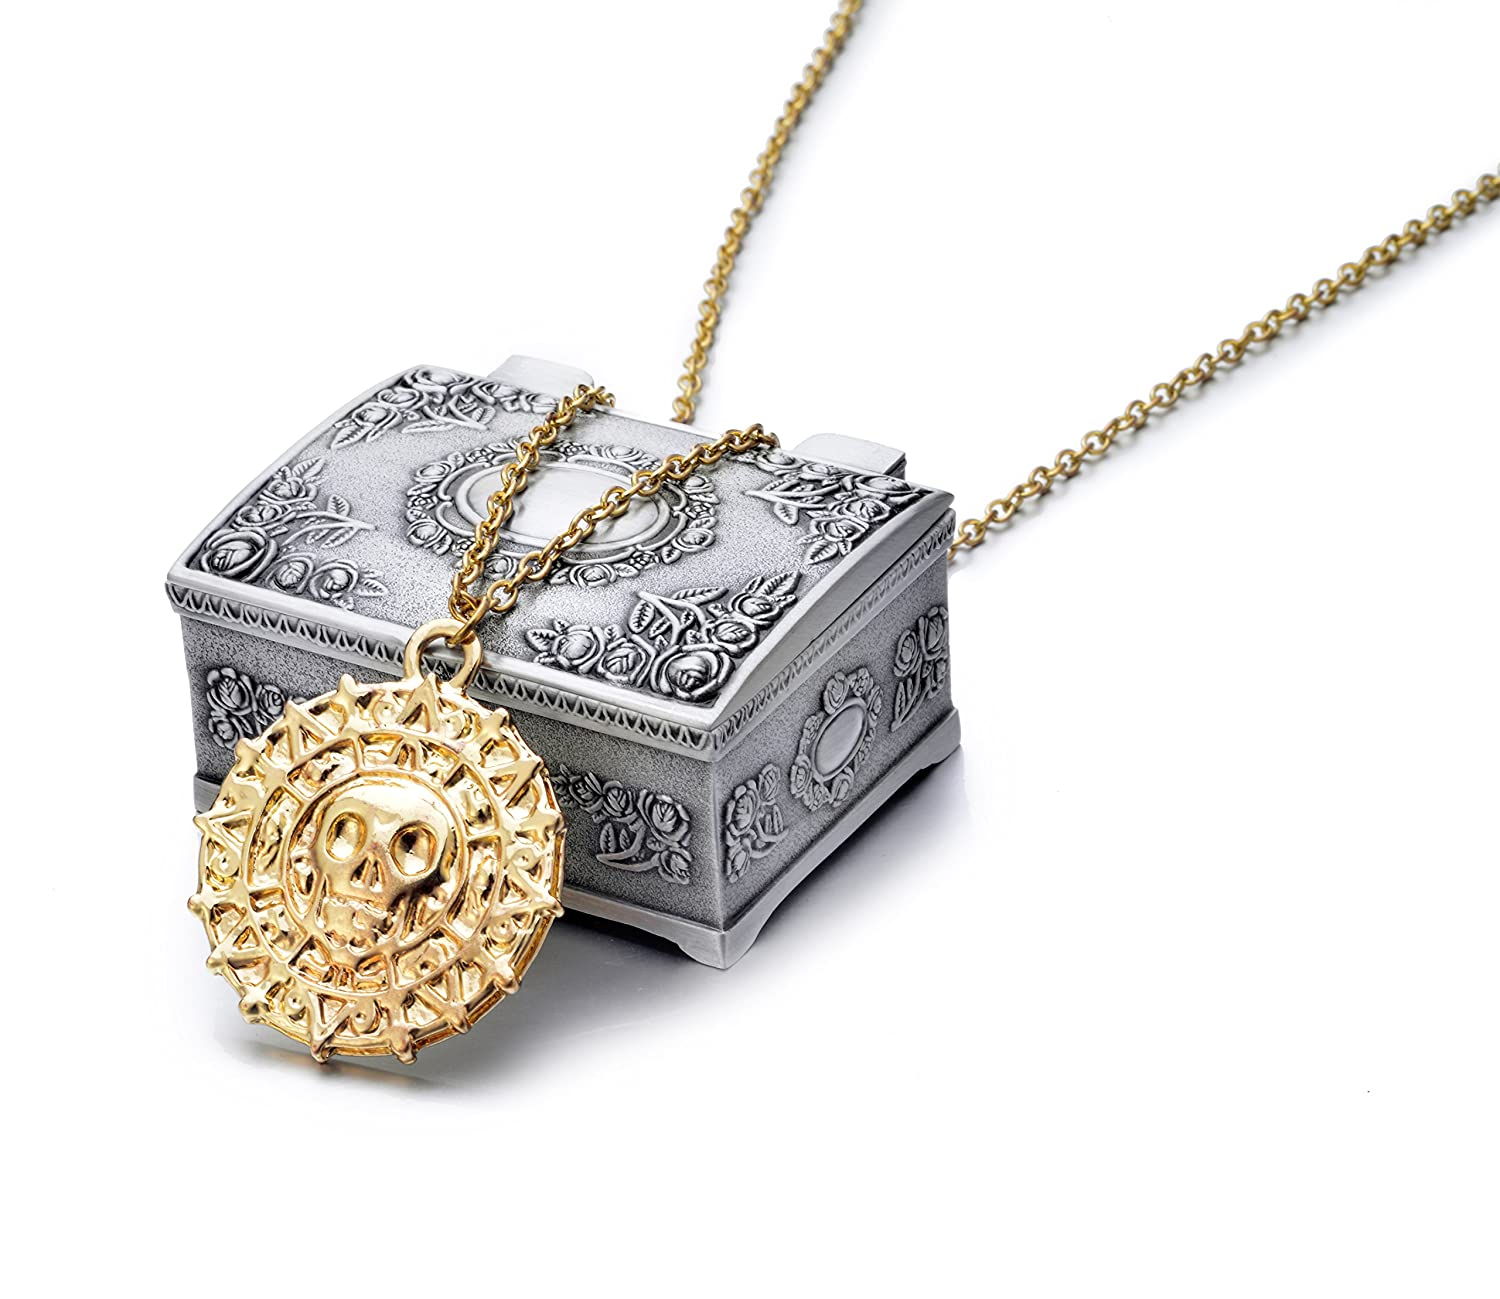 Men's gold-tone metal Aztec coin pendant necklace and jewelry box - DeluxeAdultCostumes.com